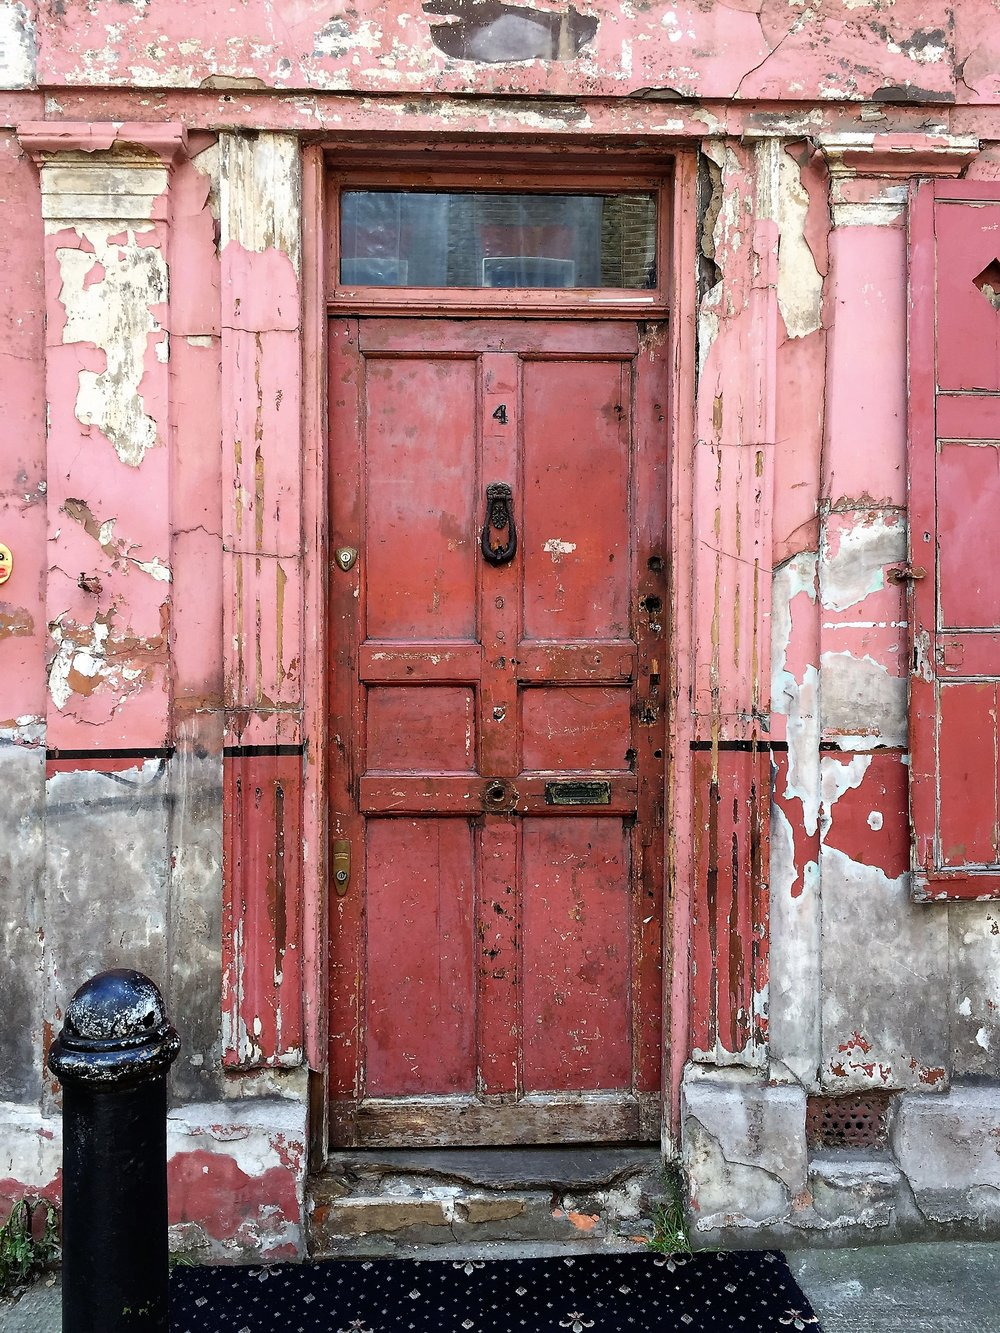 If doors could talk...I'm sure this one would have many stories to tell.